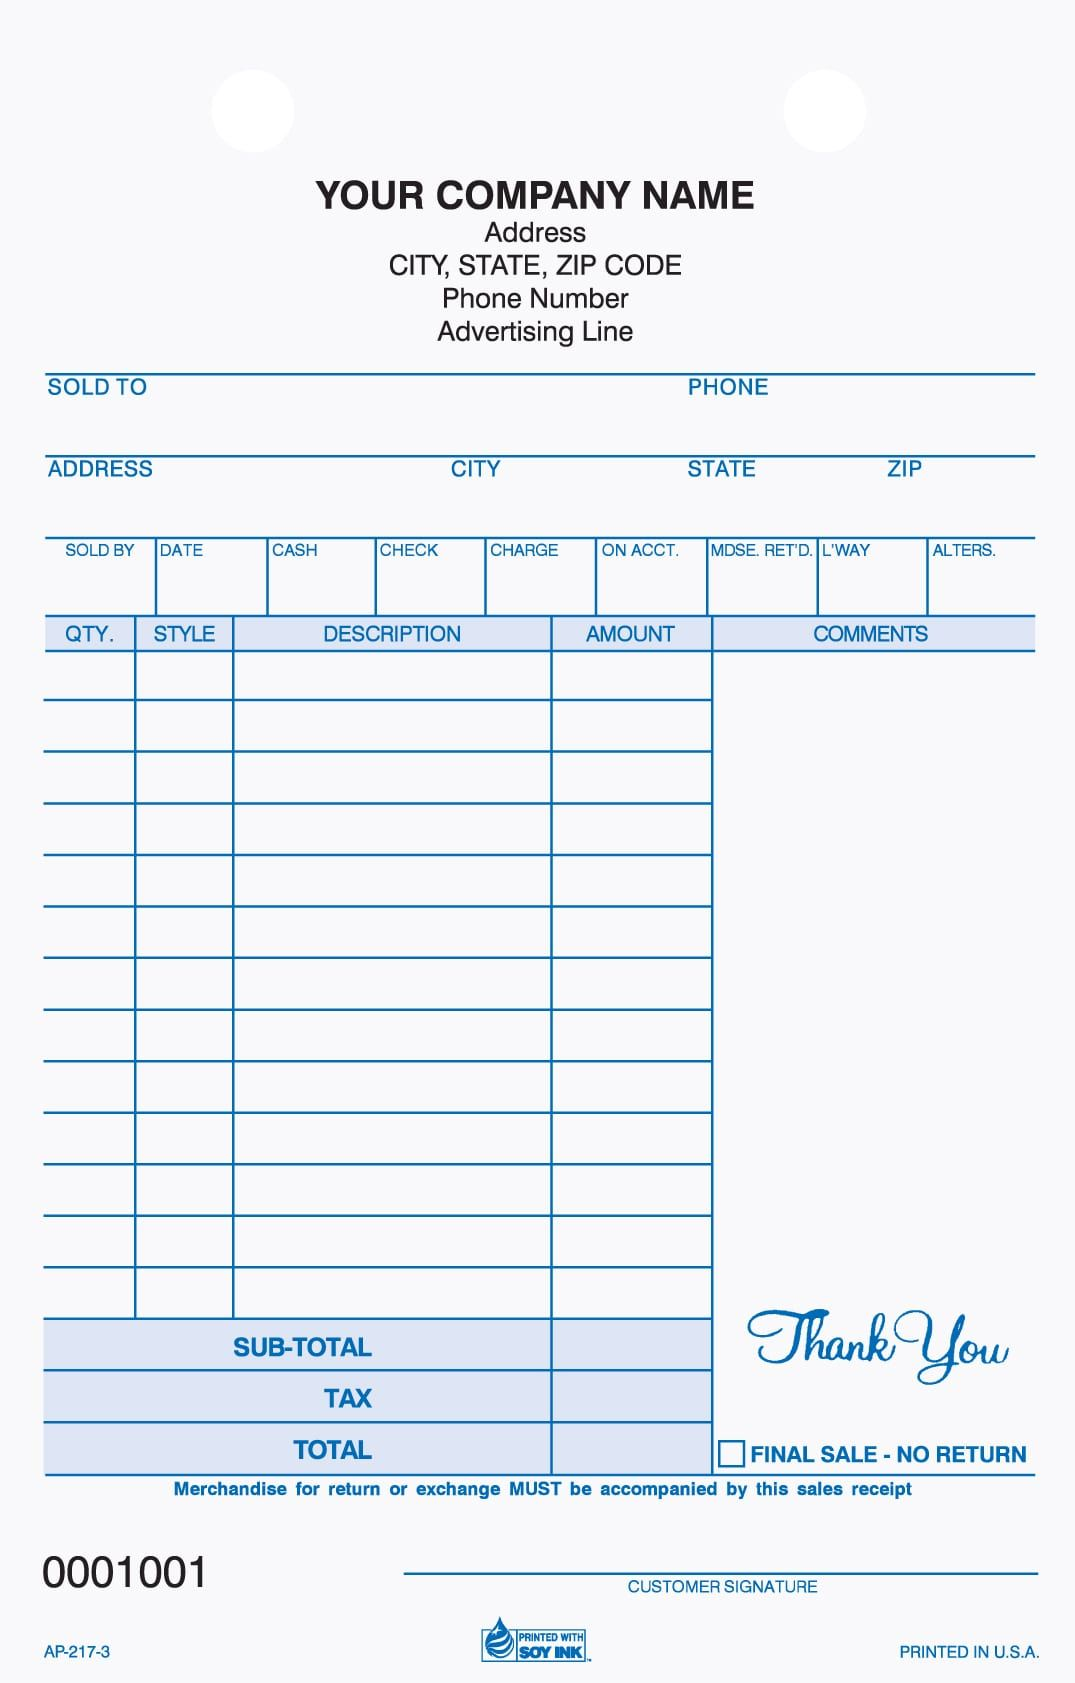 036 81 49 Ndash 036 344 052 Part Apparel Register Formshttps Www Stargatedesign Com Product 2 Invoice Template Word Paper Art Diy Free Receipt Template